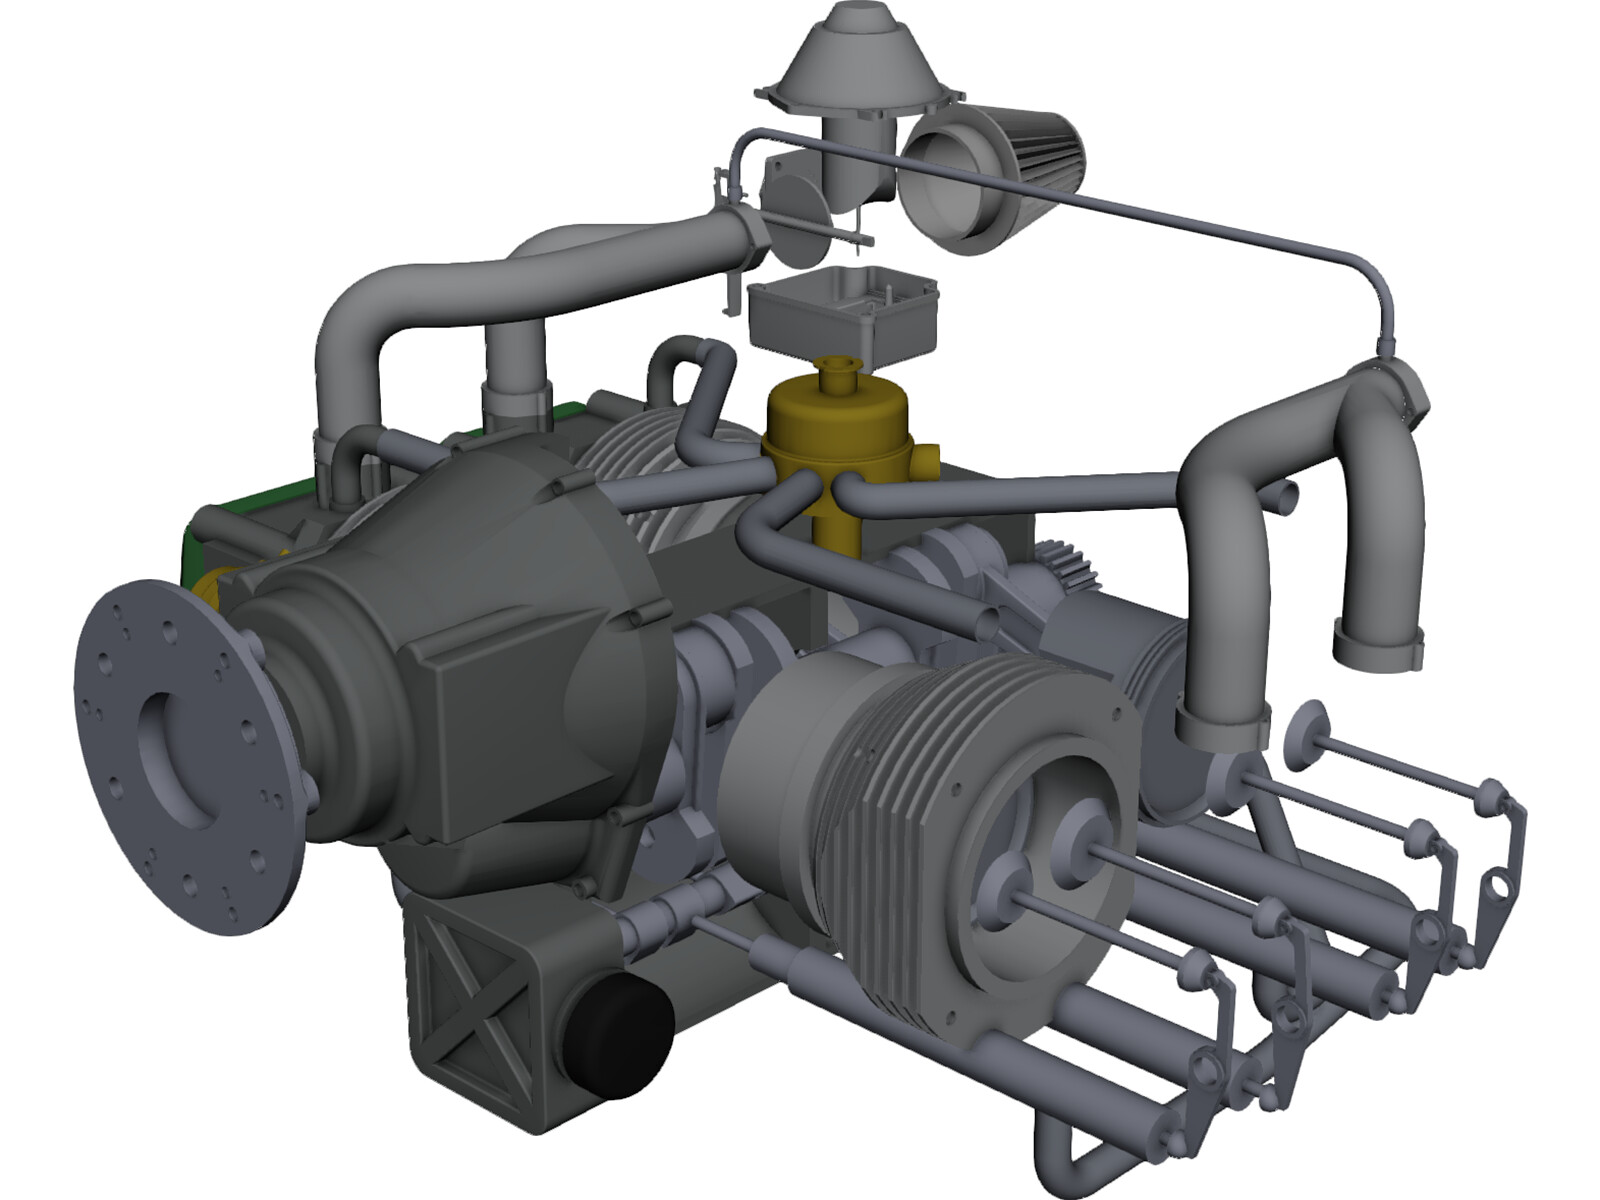 Rotax 912 Aircraft Engine 3D CAD Model